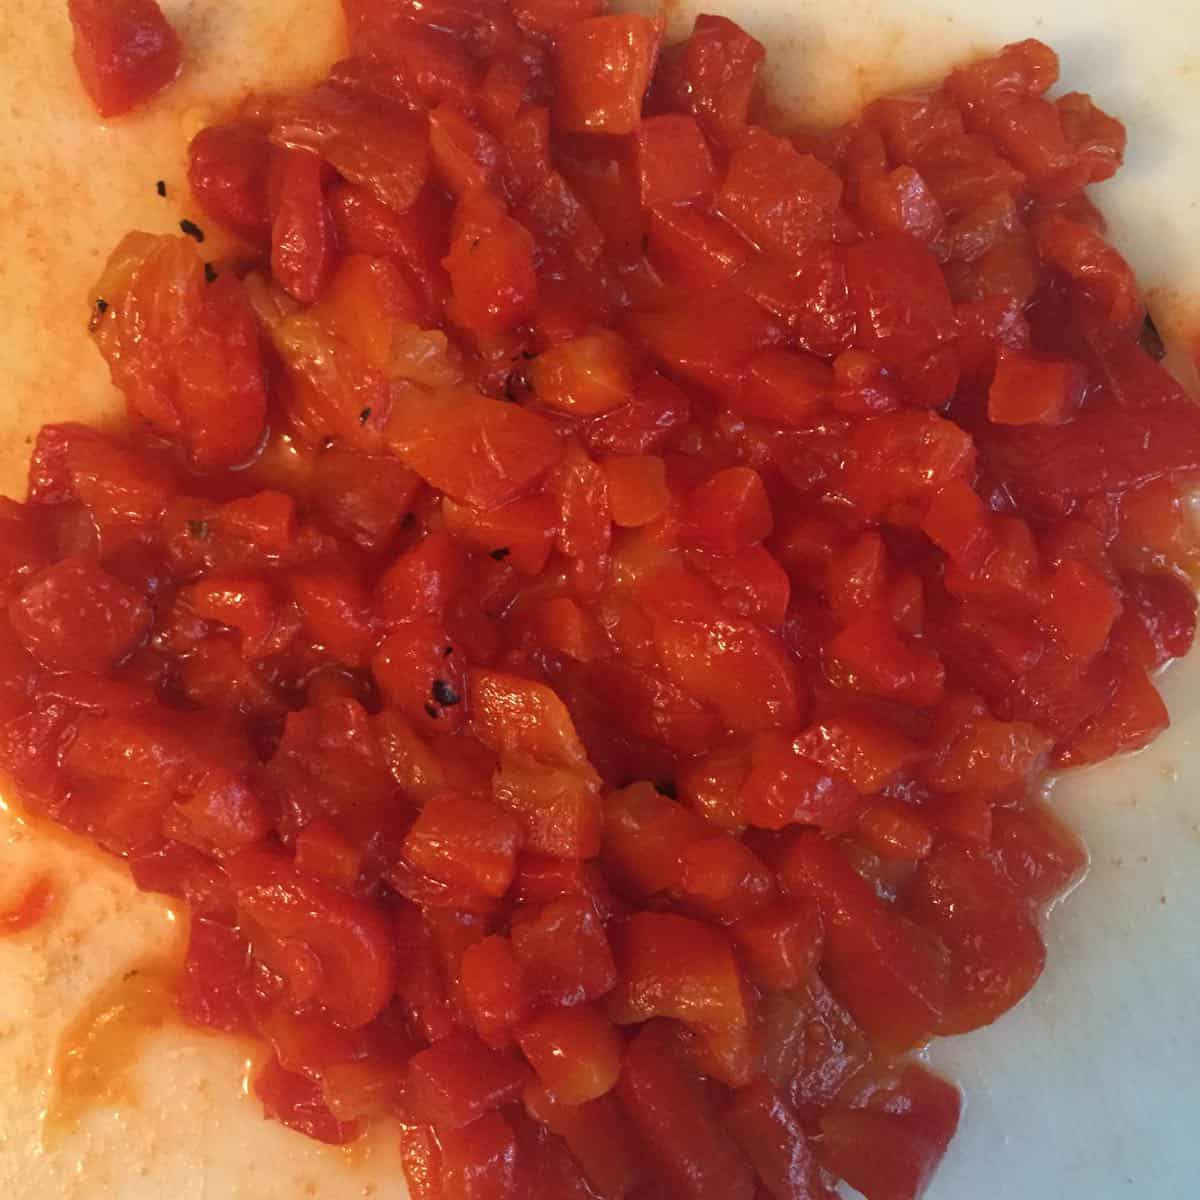 Minced roasted red bell pepper on a cutting board.